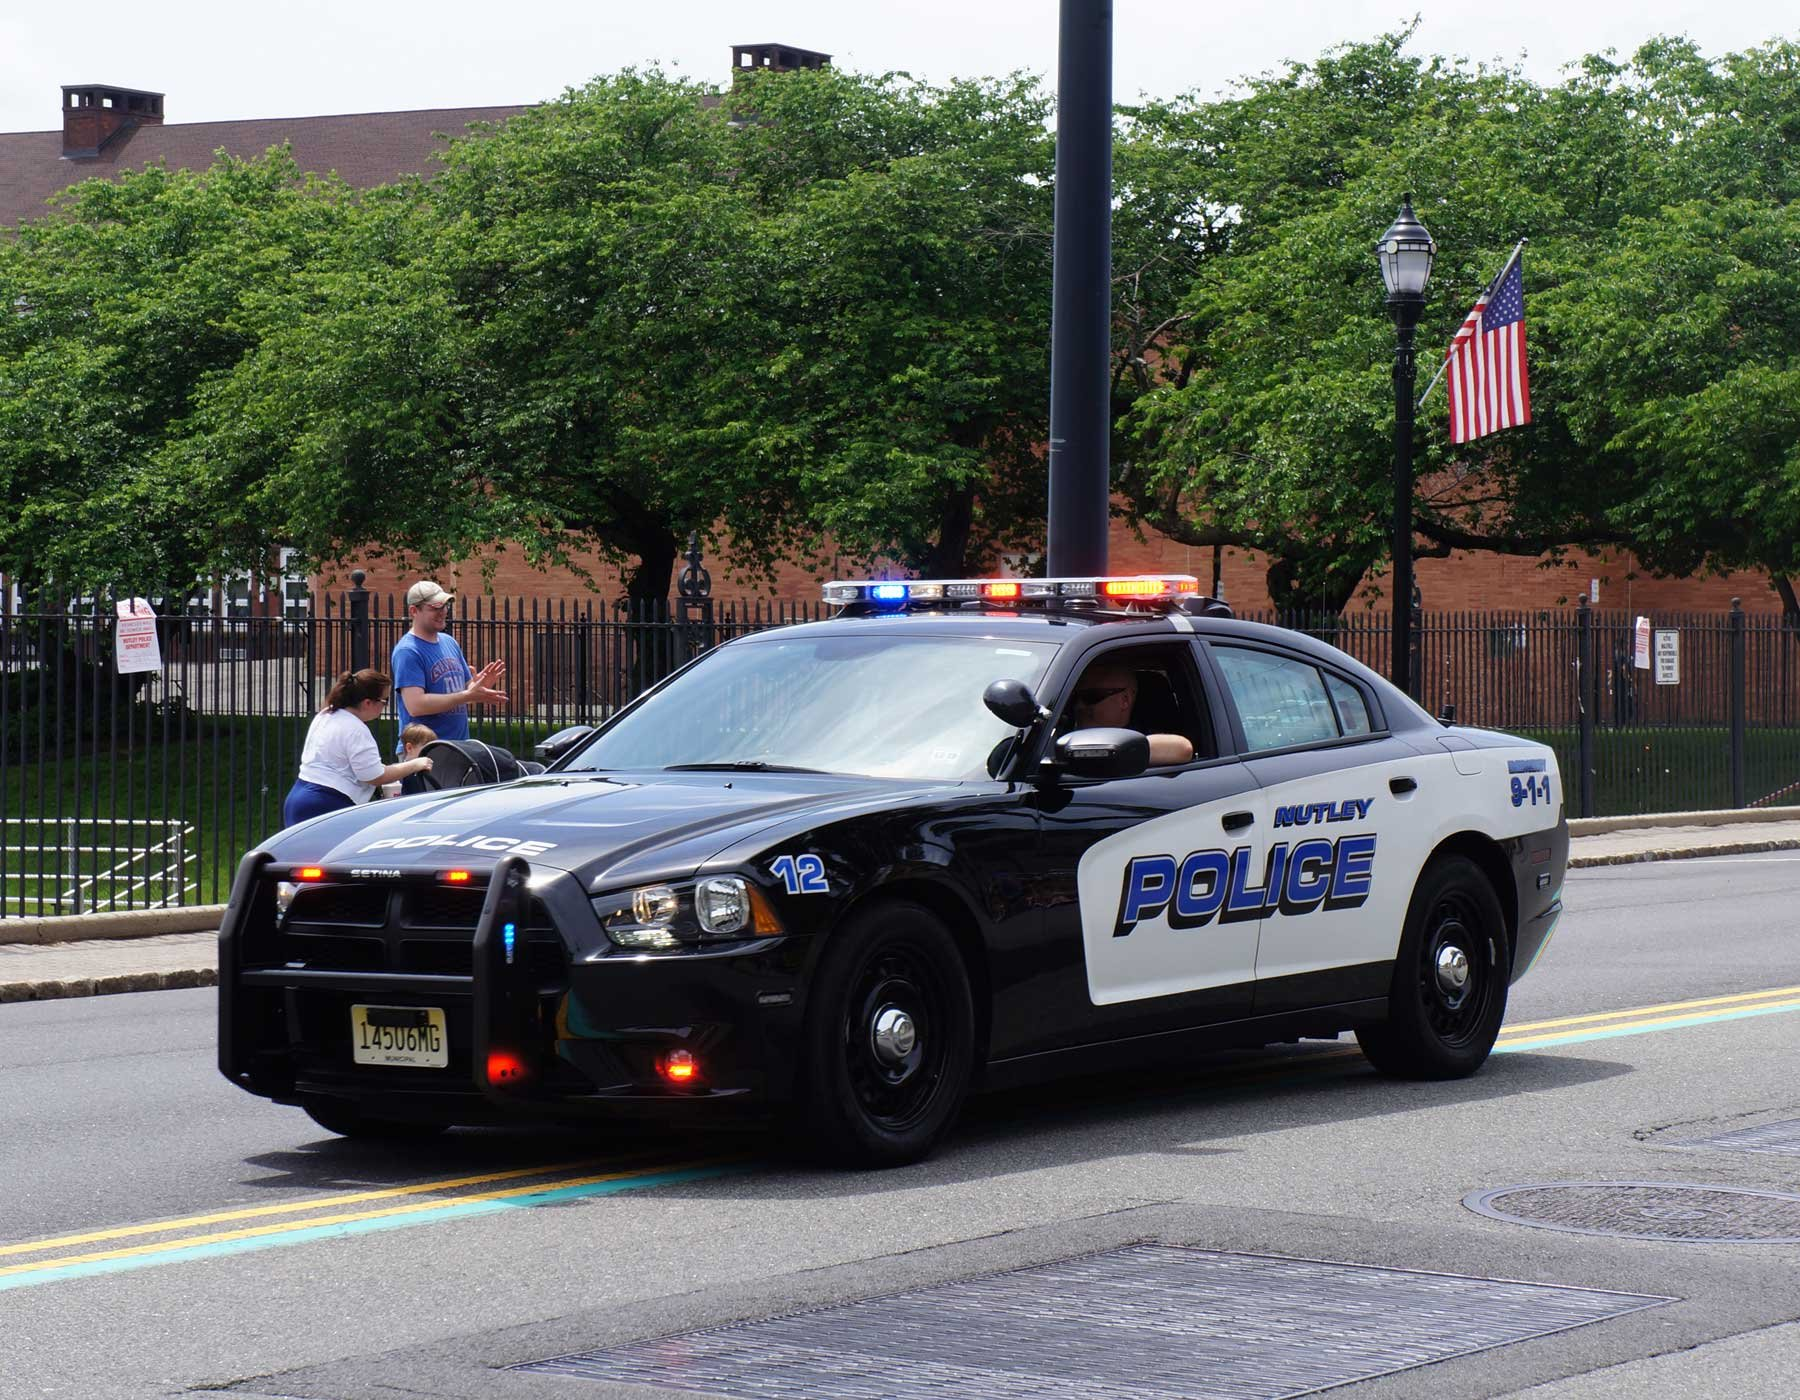 Nutley, New Jersey - Police Department